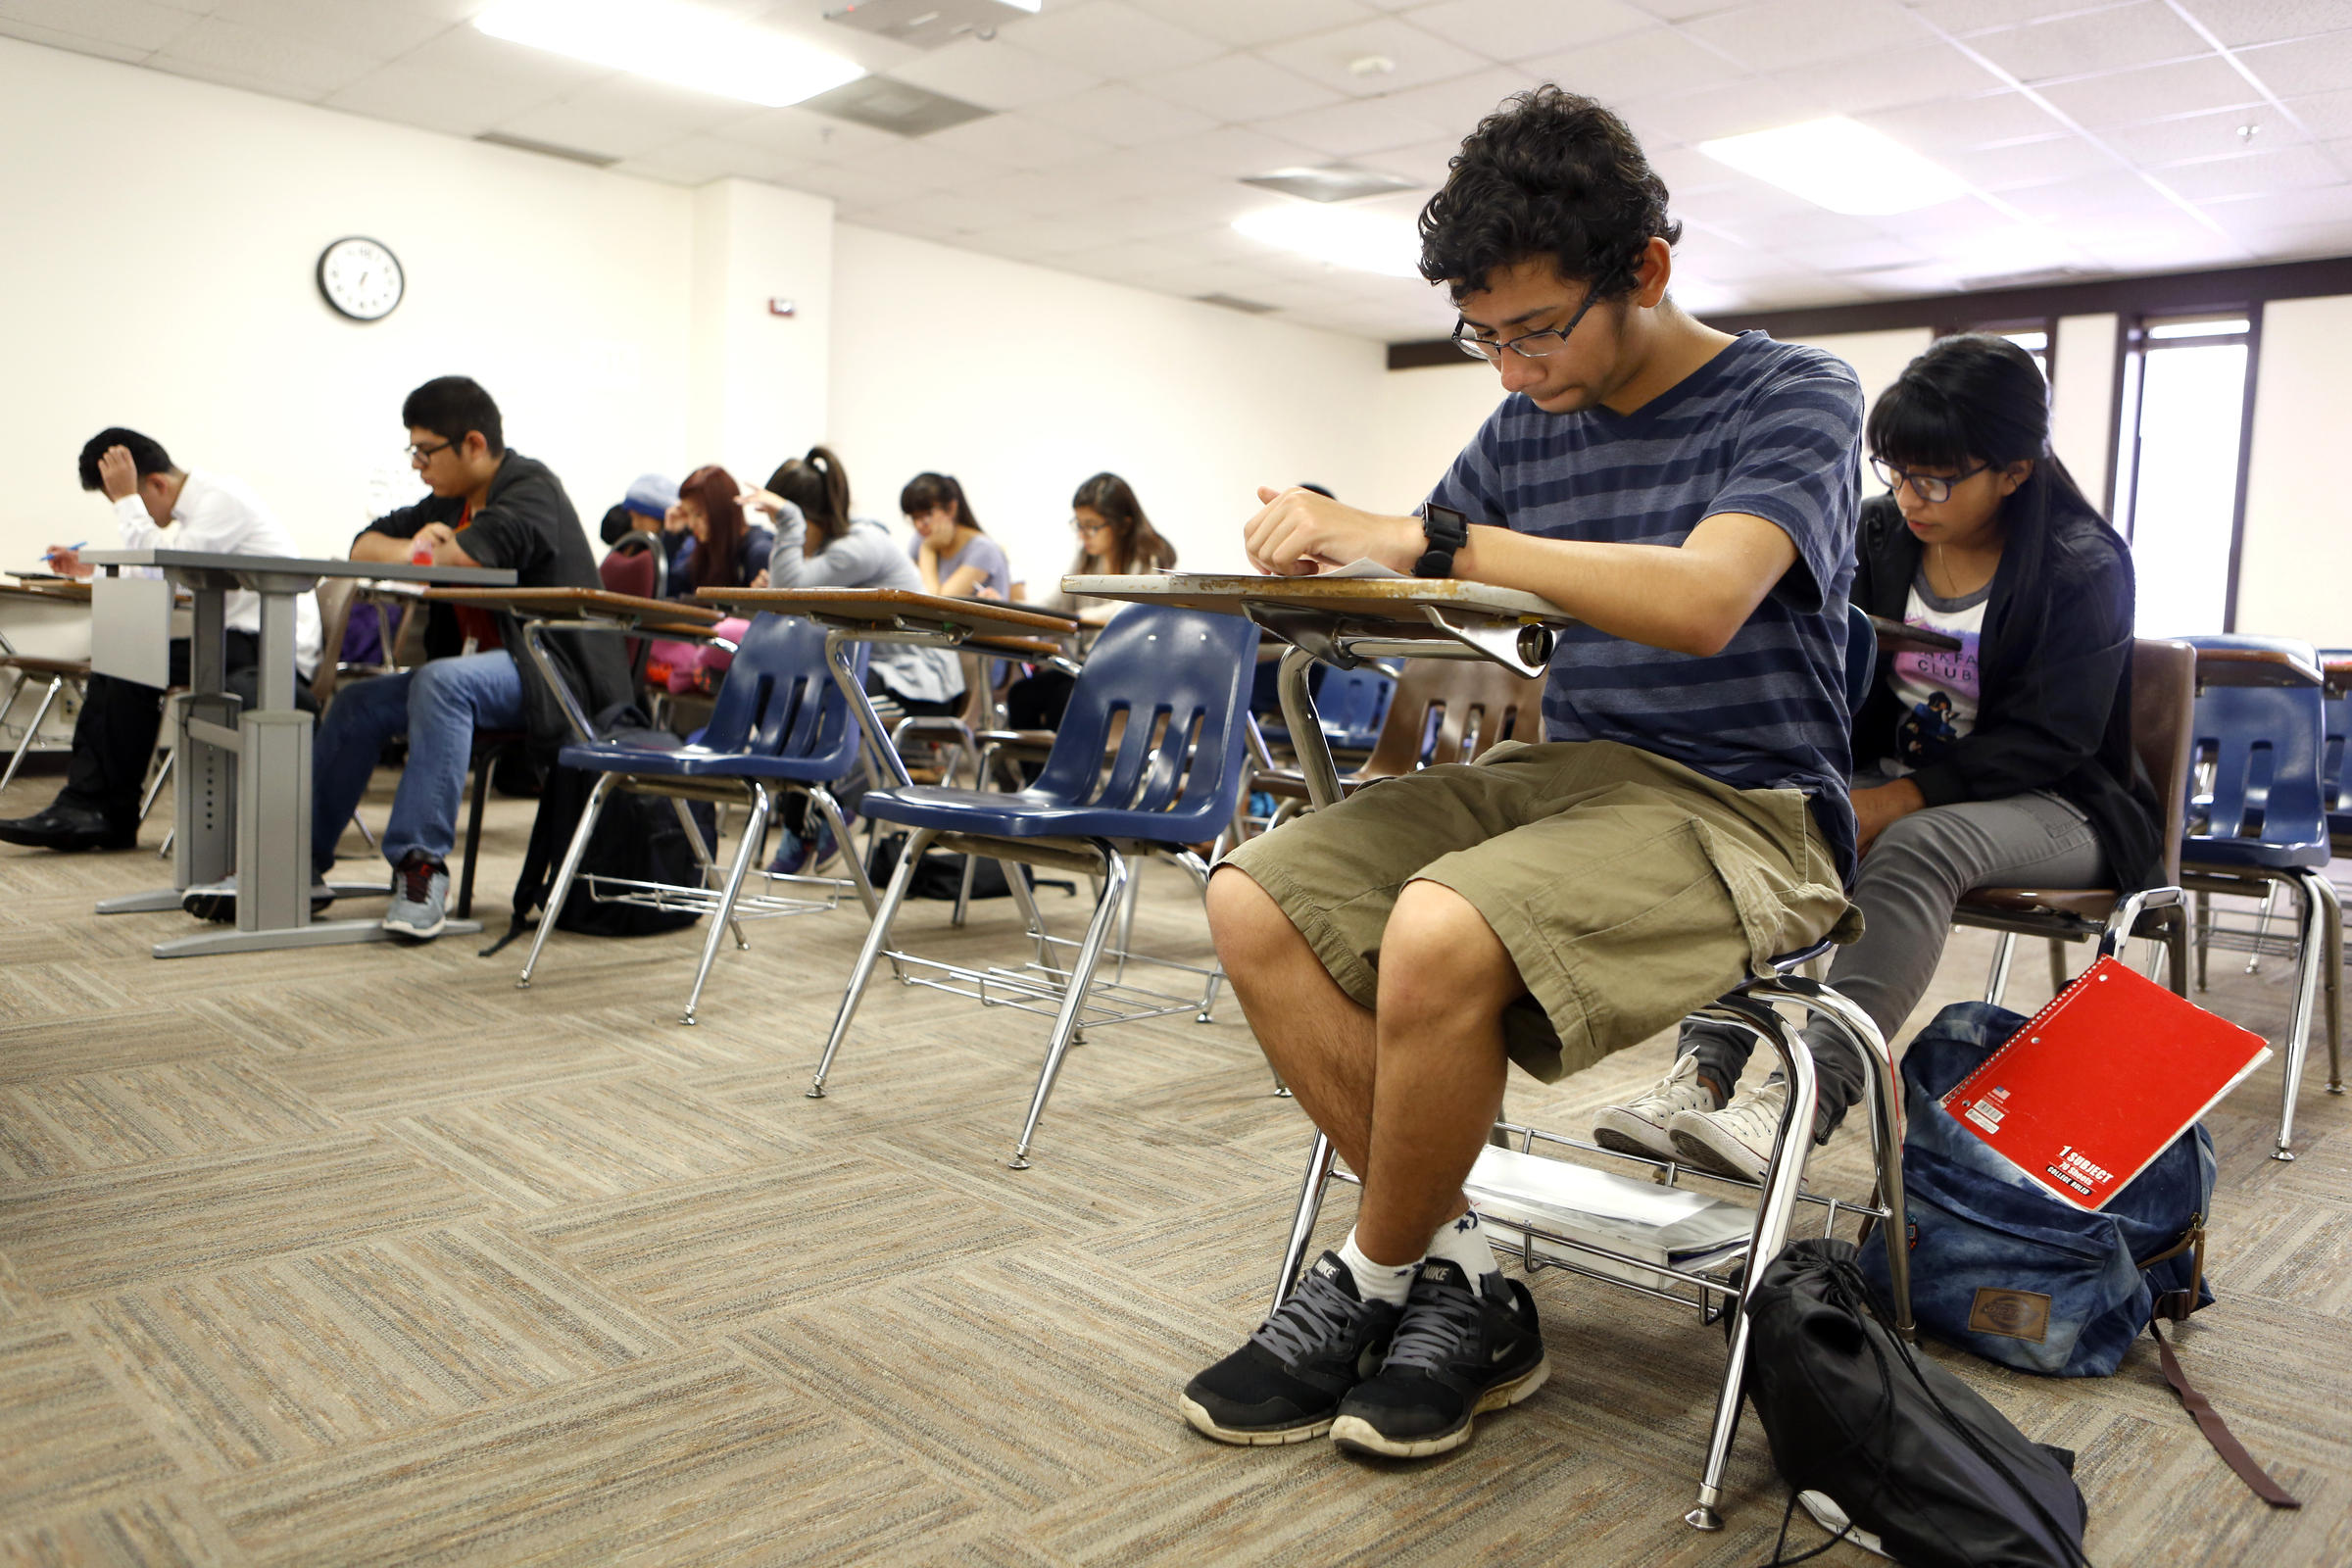 Joel Luera takes a quiz during a history class at Eastfield College Campus where he takes classes as part of W.W. Samuell Early College High School in Dallas. Photographed Monday, April 18, 2016. (photo © Lara Solt)